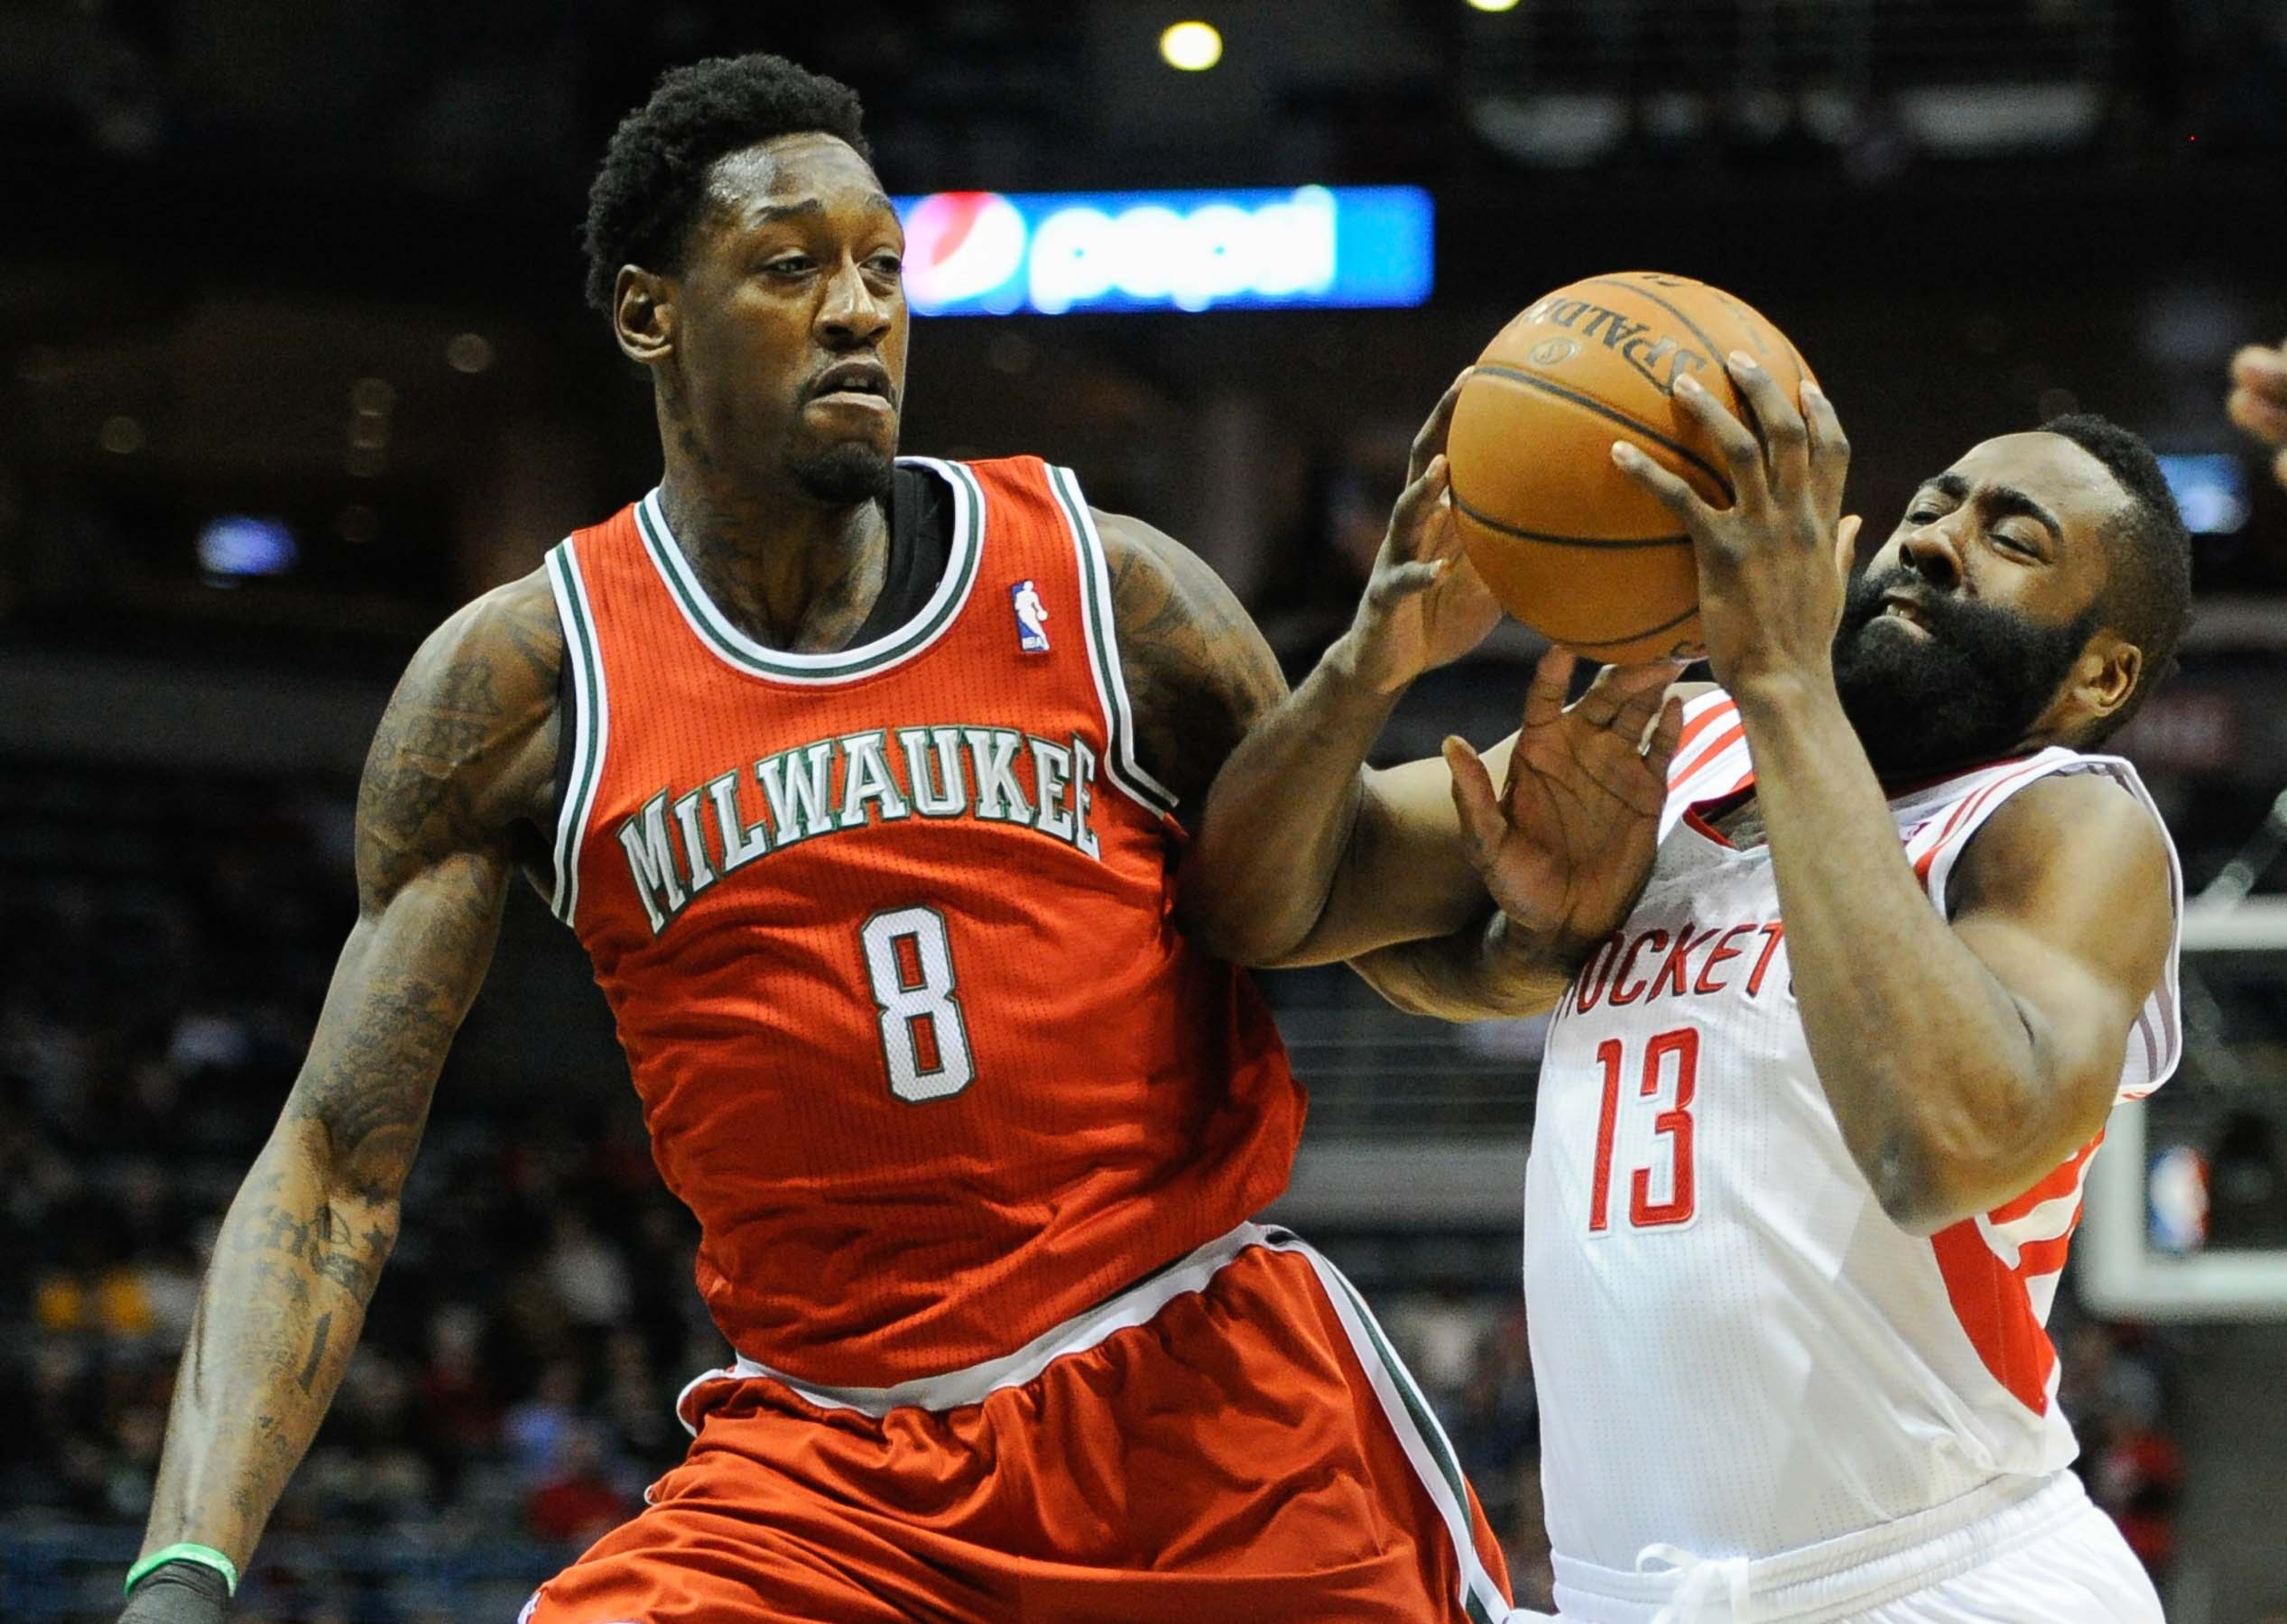 Larry Sanders injury: Bucks center out until after All-Star break with fractured orbital bone